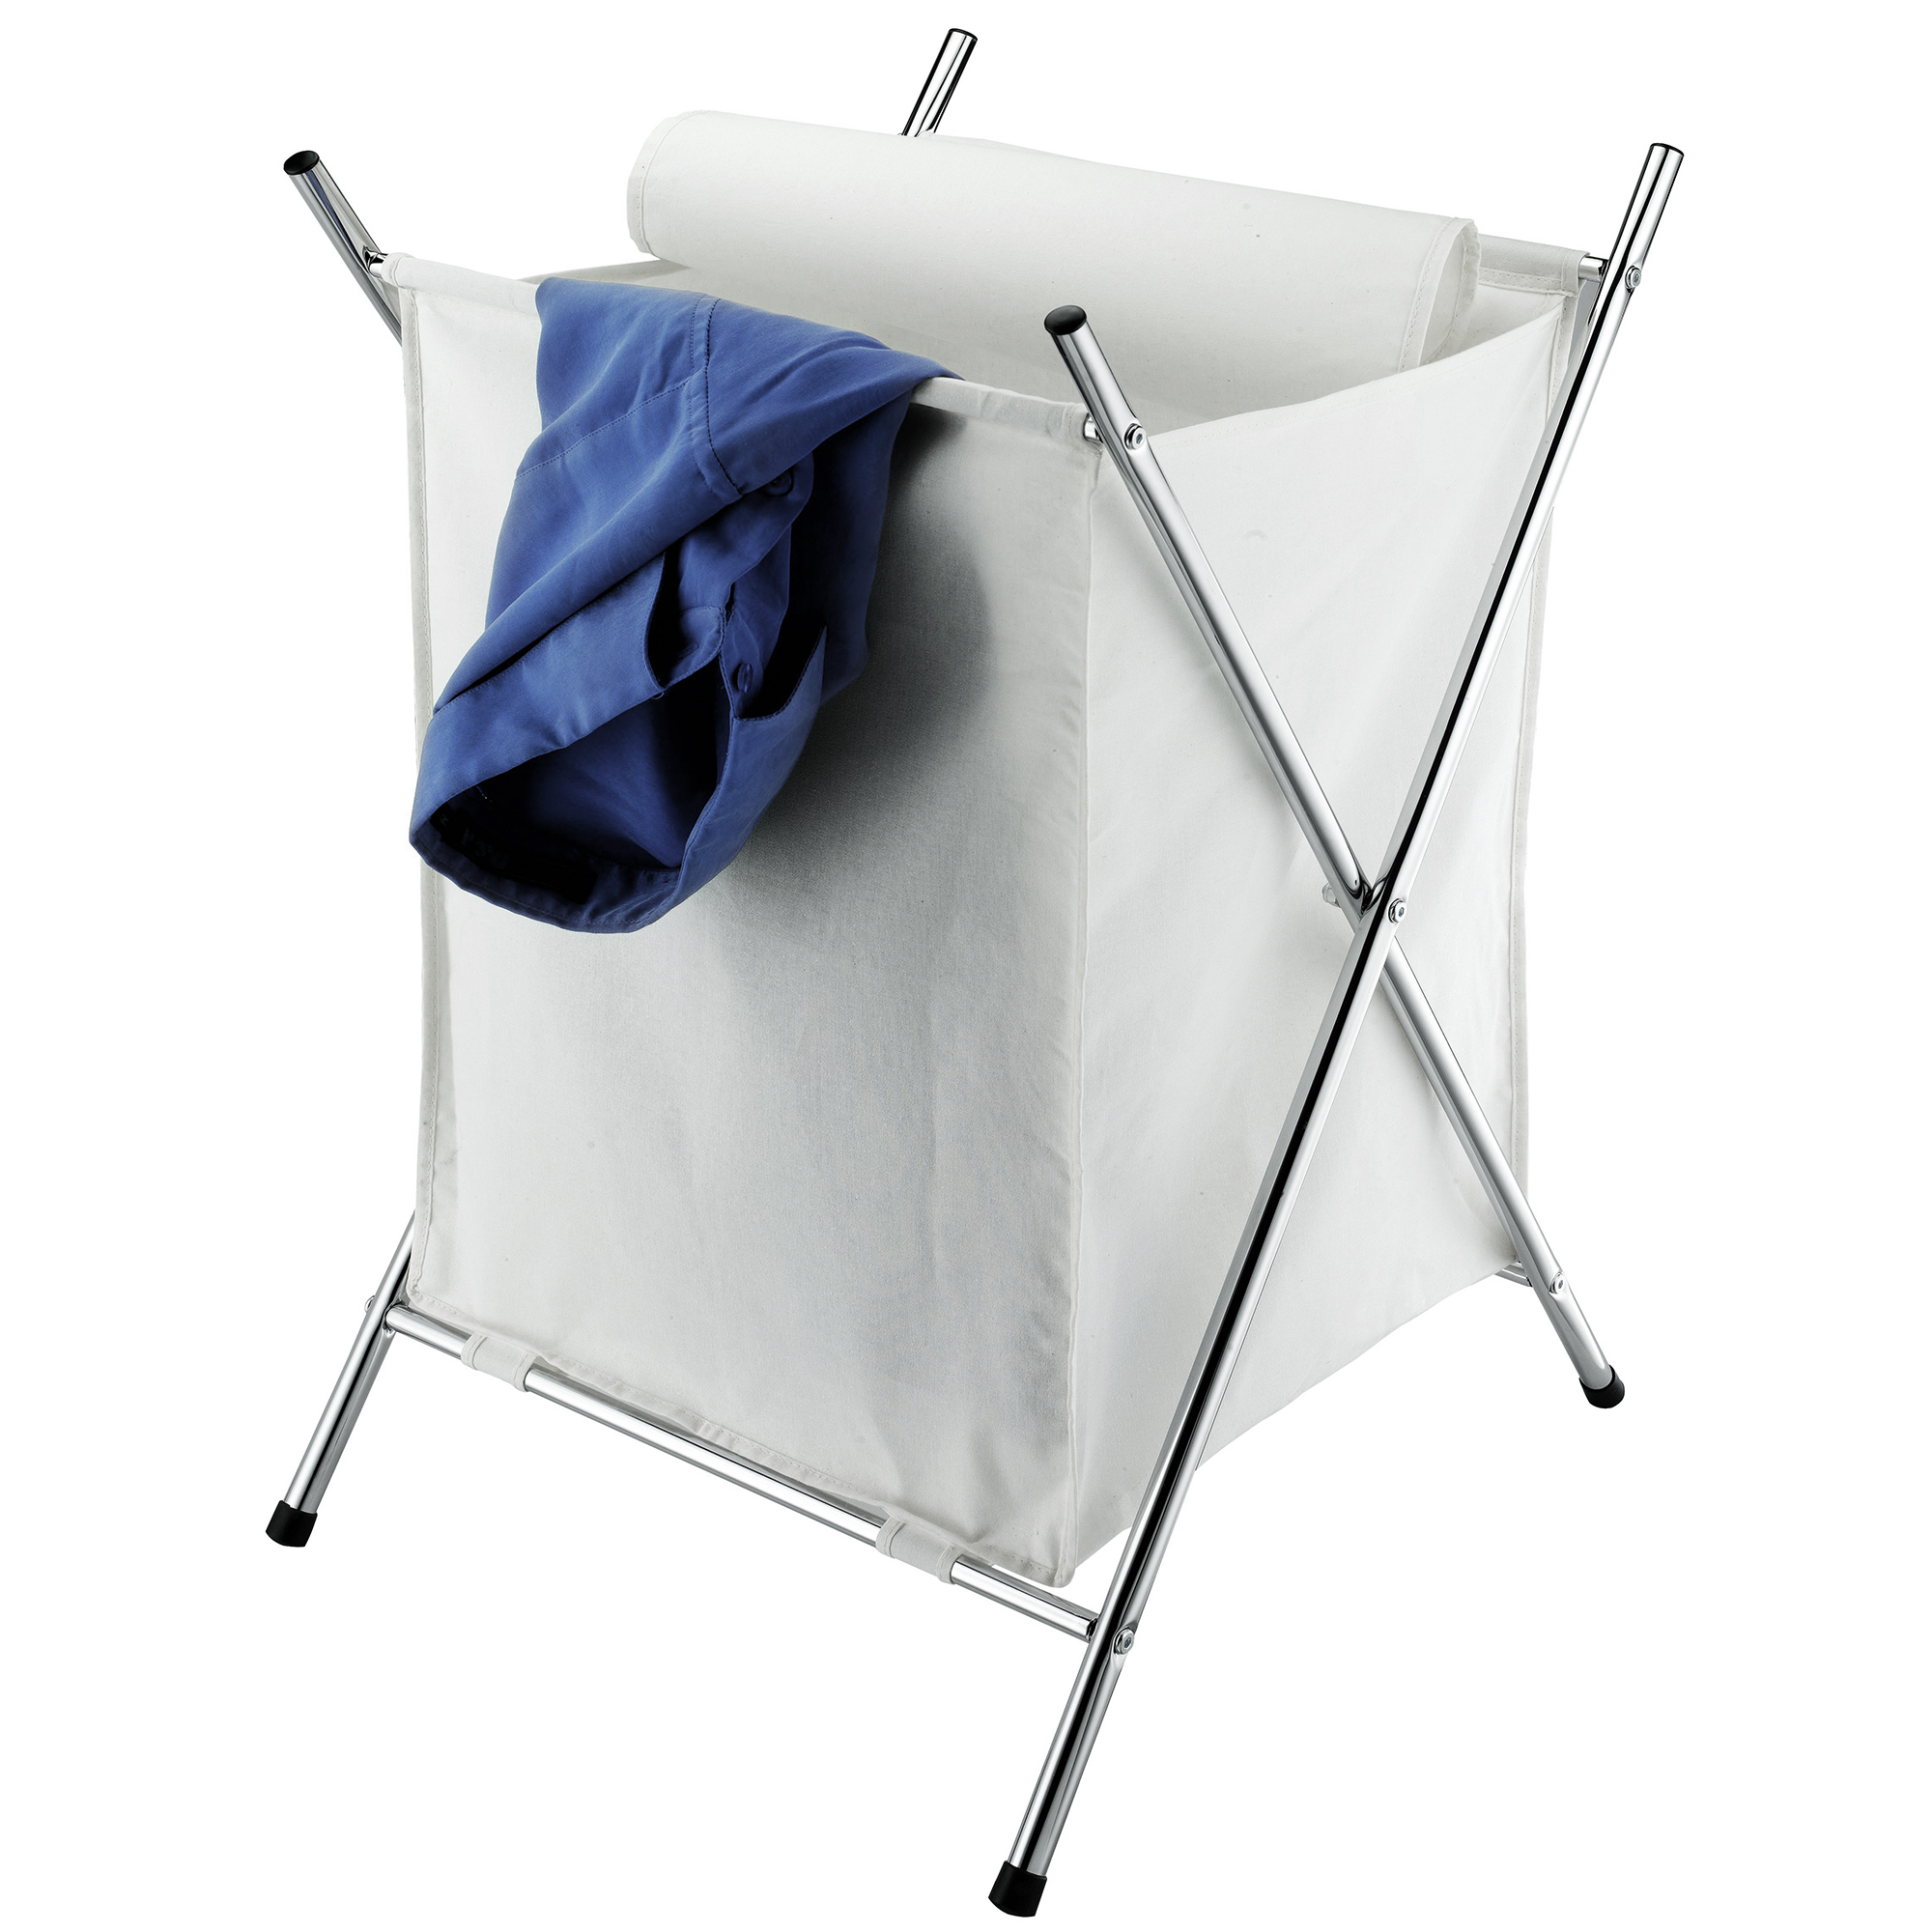 Furinno Wayar Foldable Laundry Basket with Stand, WS17005